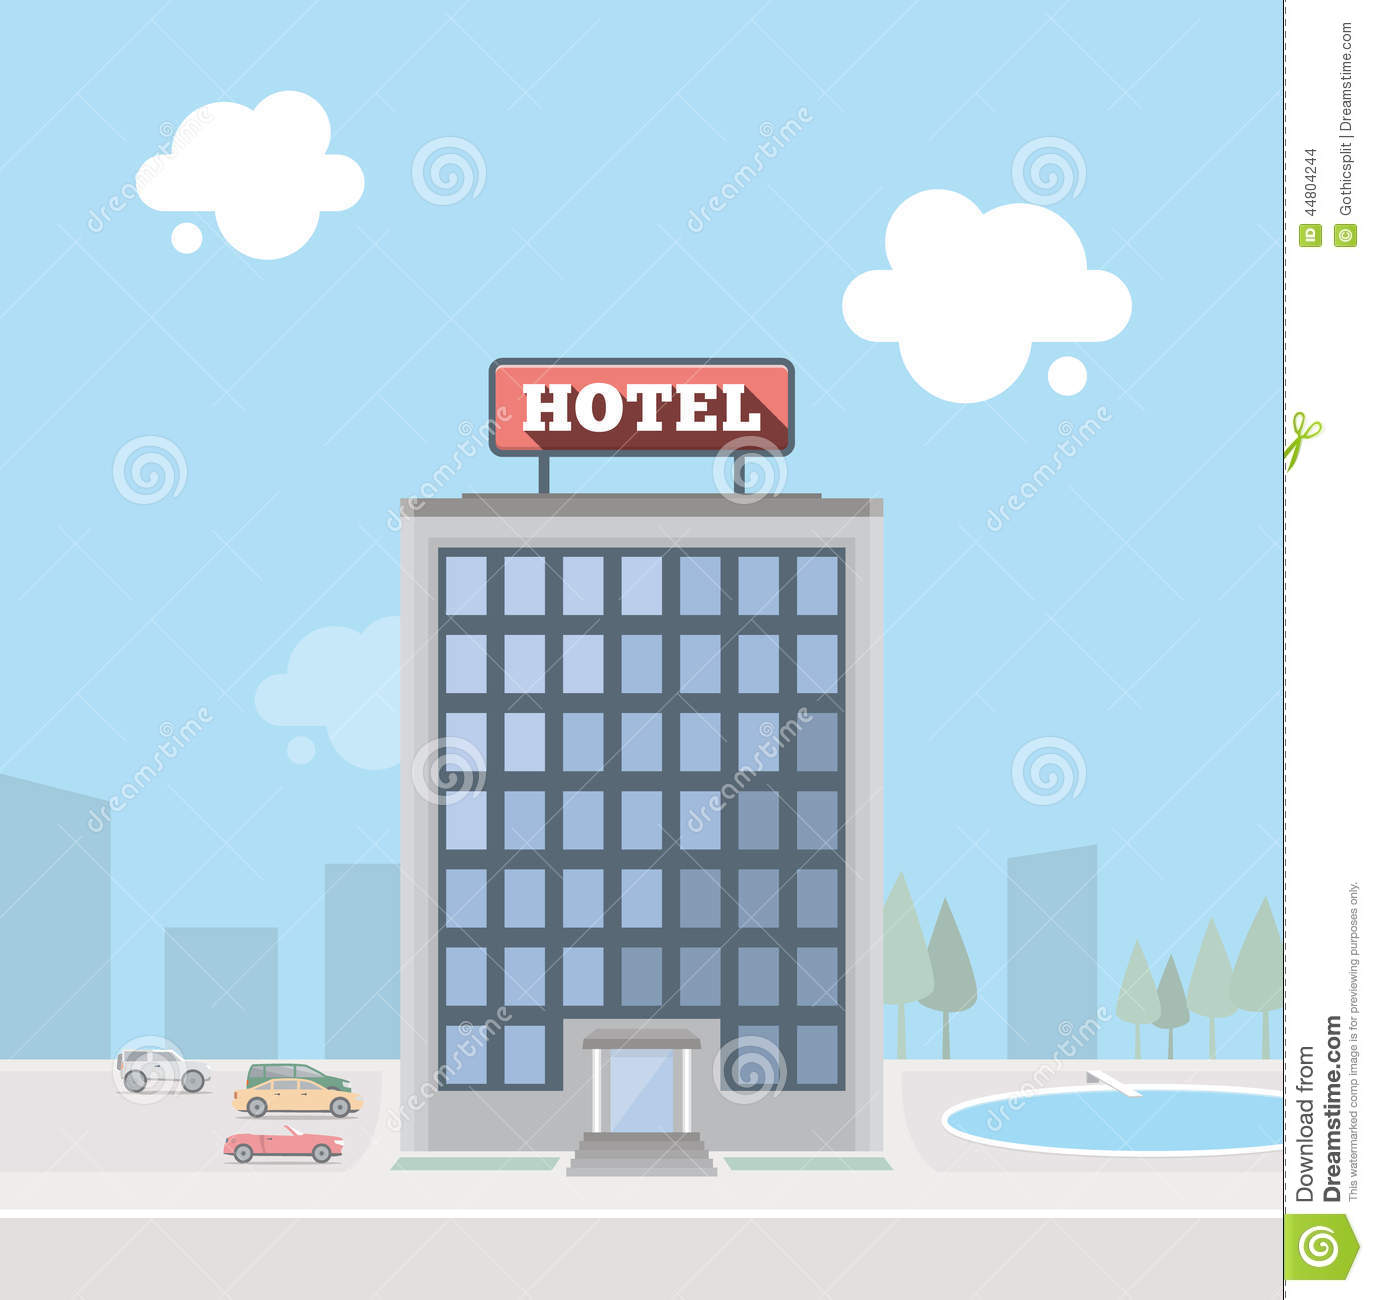 Hotel Building Stock Vector Image 44804244